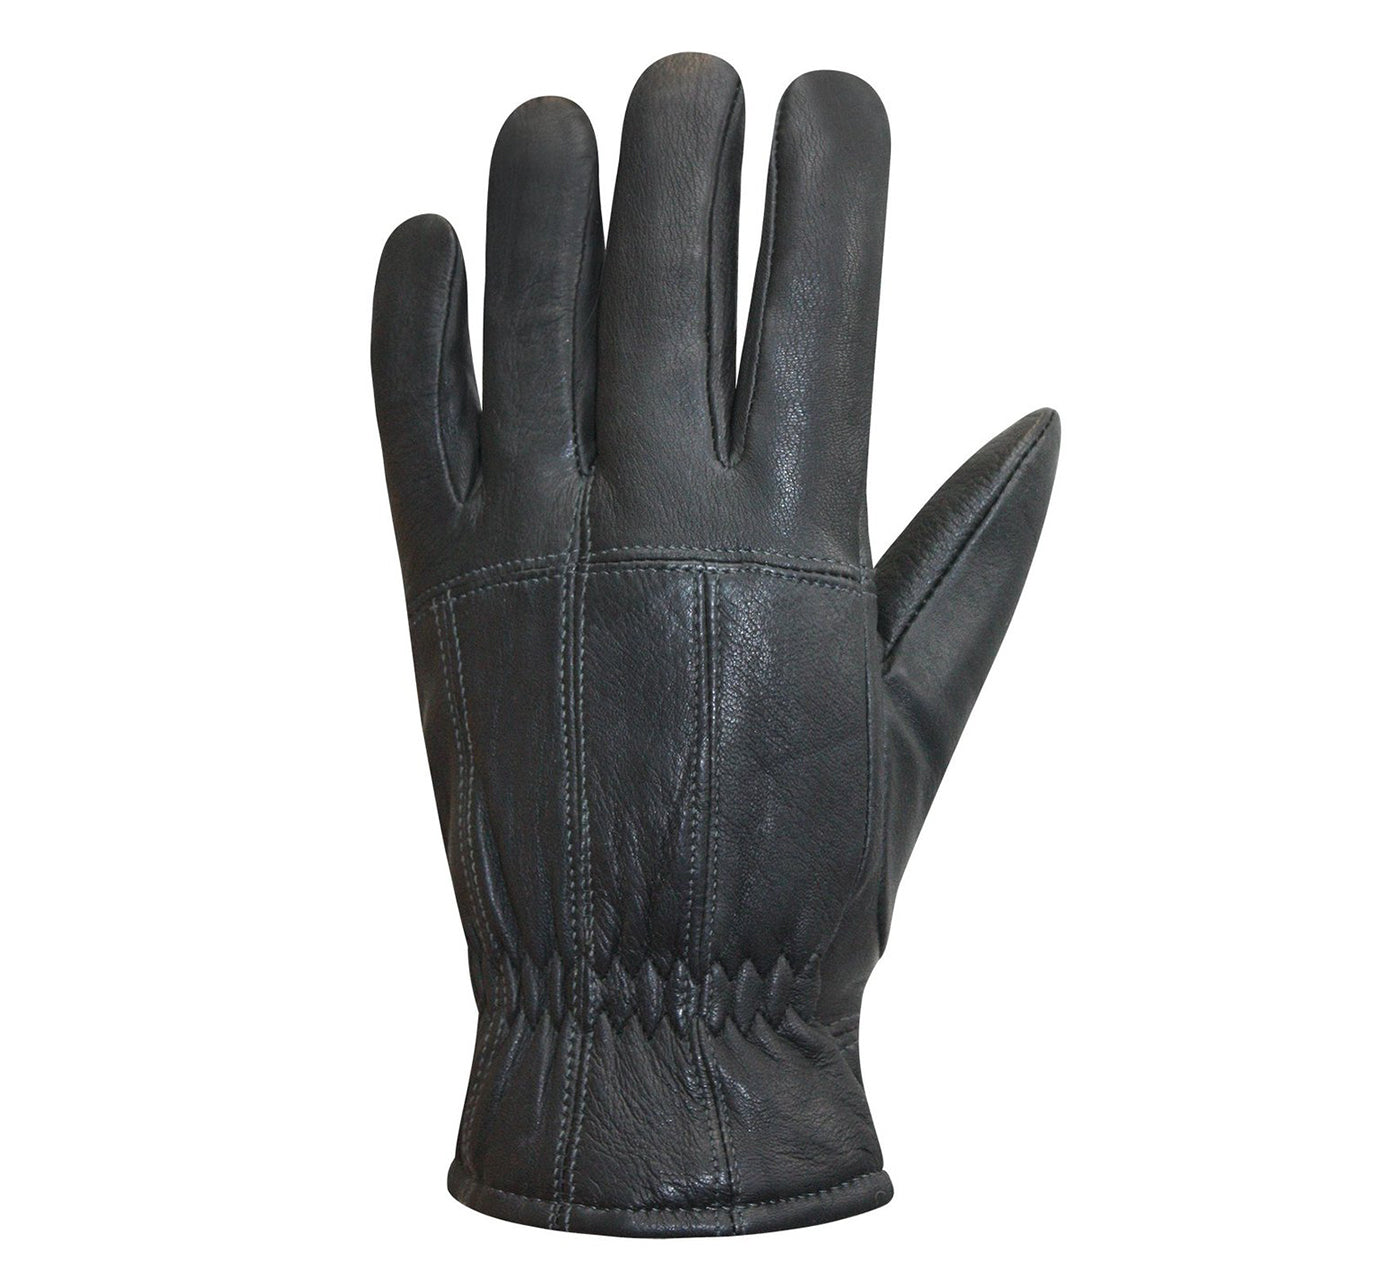 Auclair Deerskin Gloves